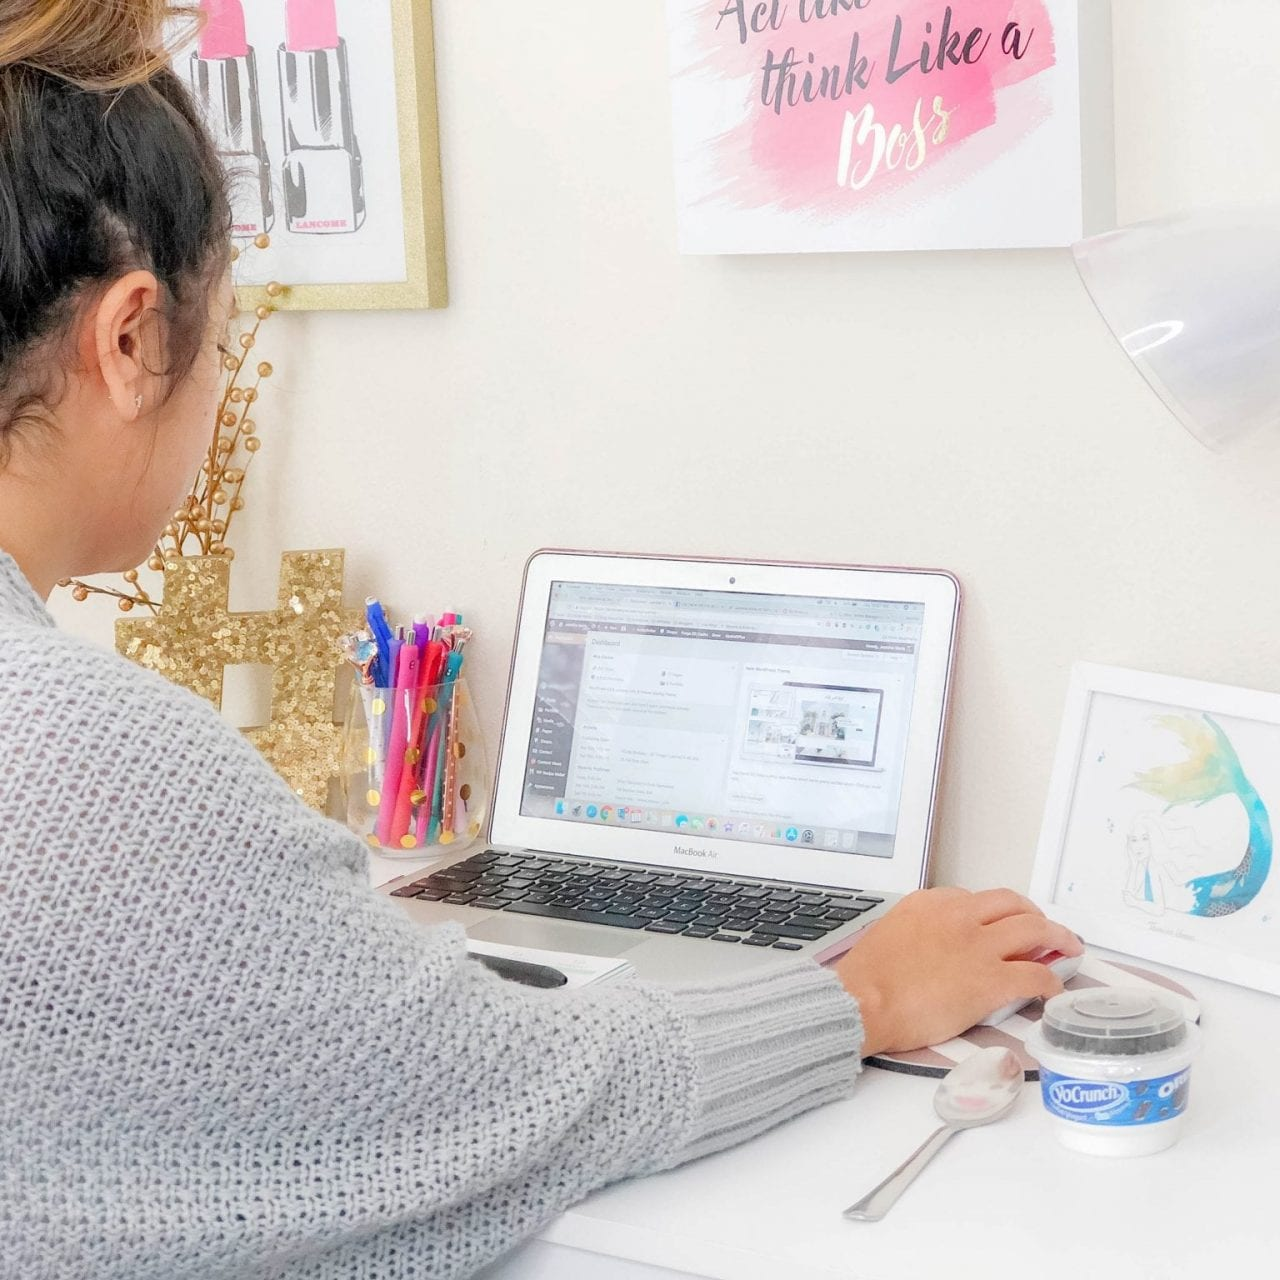 6 Ways to Stay Healthy When Working from Home